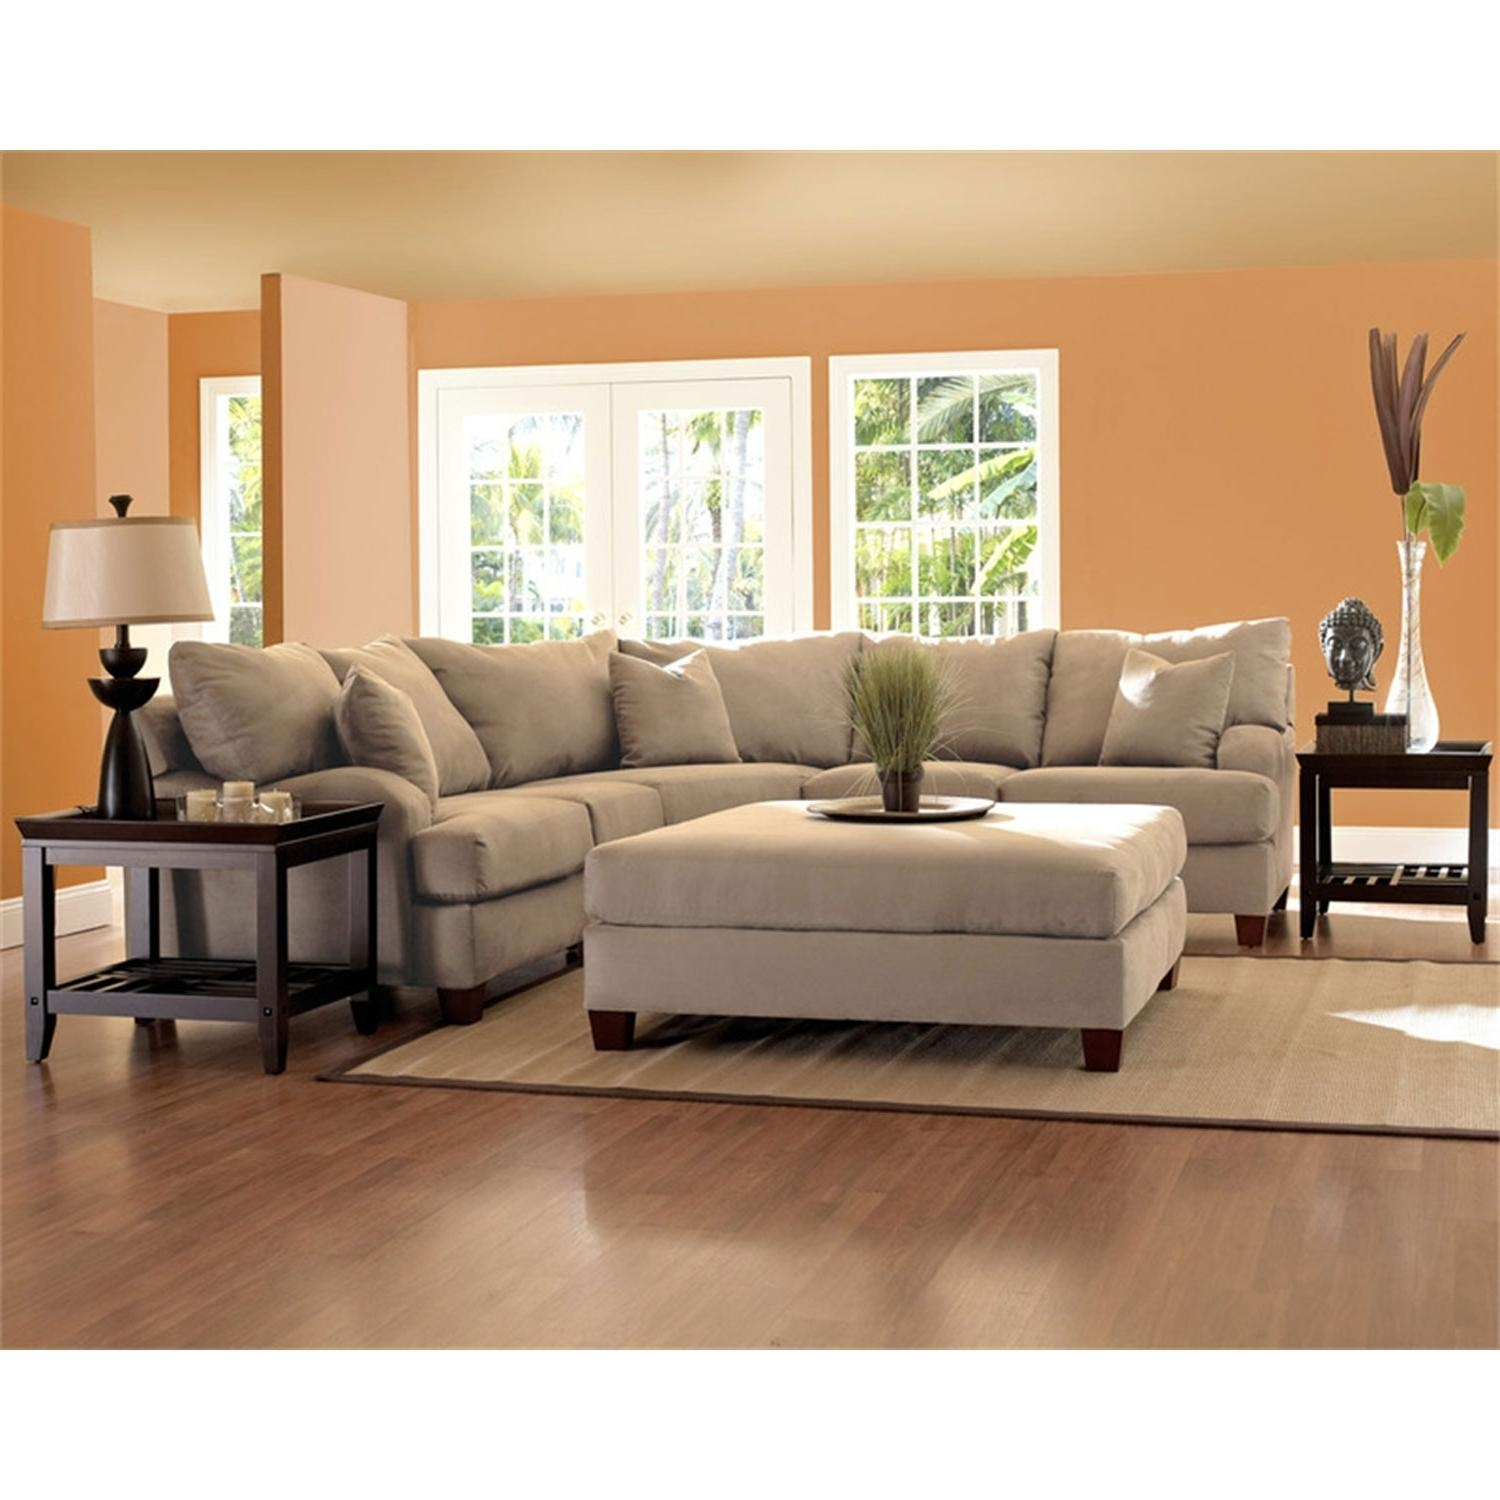 Living Room Furniture Sofas Couches Hom Furniture Camel Colored In Camel Colored Sectional Sofa (Image 11 of 15)